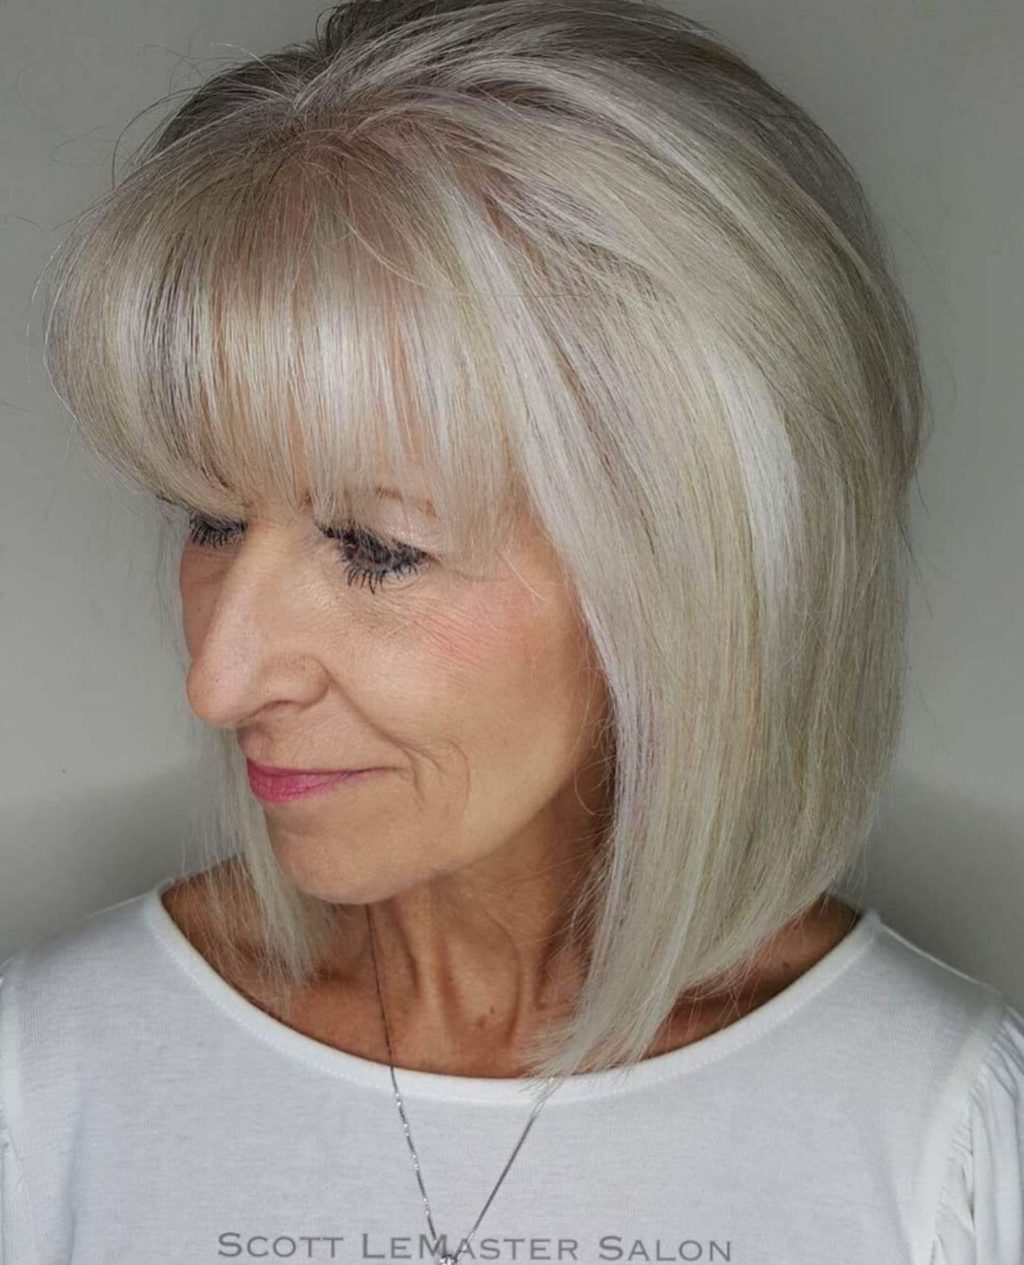 Angled-Bangs-1024x1265 Best 12 Hairstyles for Women Over 60 to Look Younger